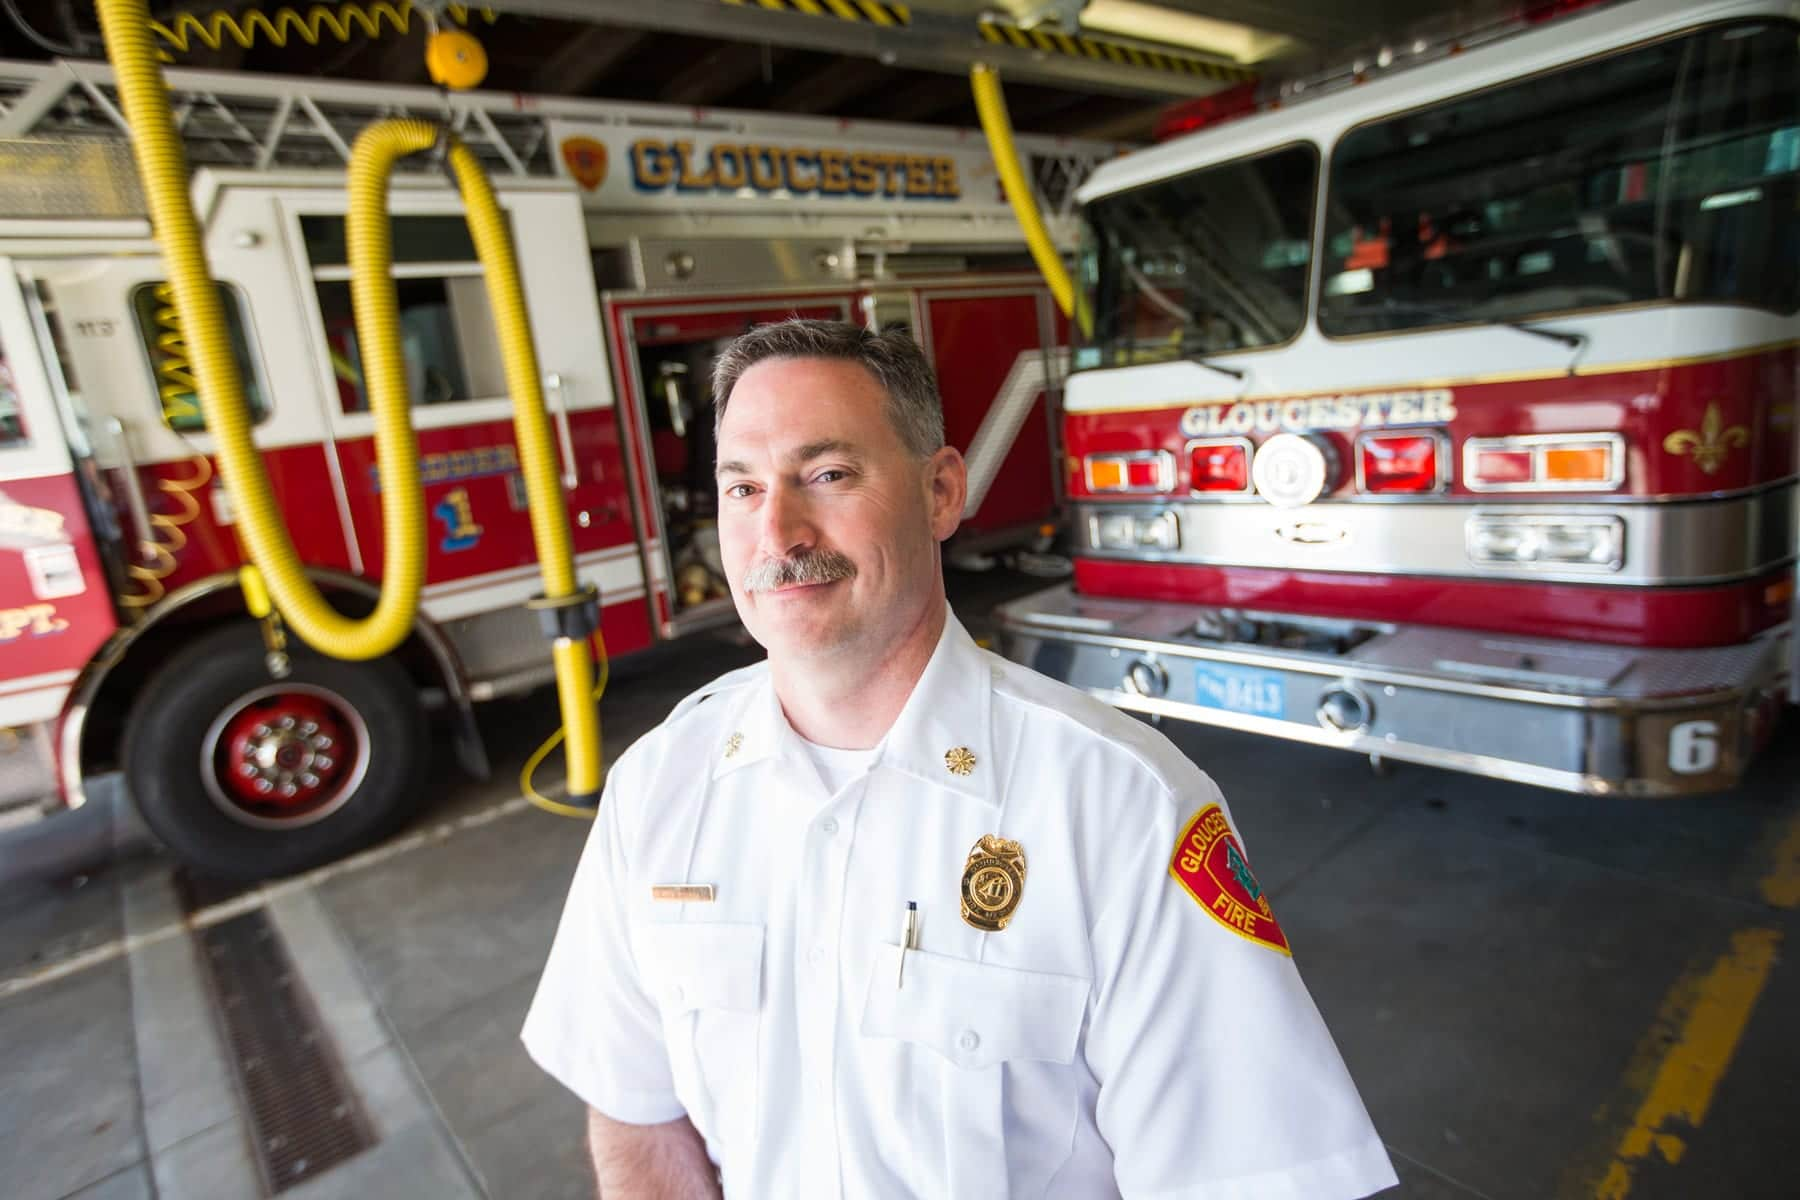 Gloucester Fire Chief Eric Smith